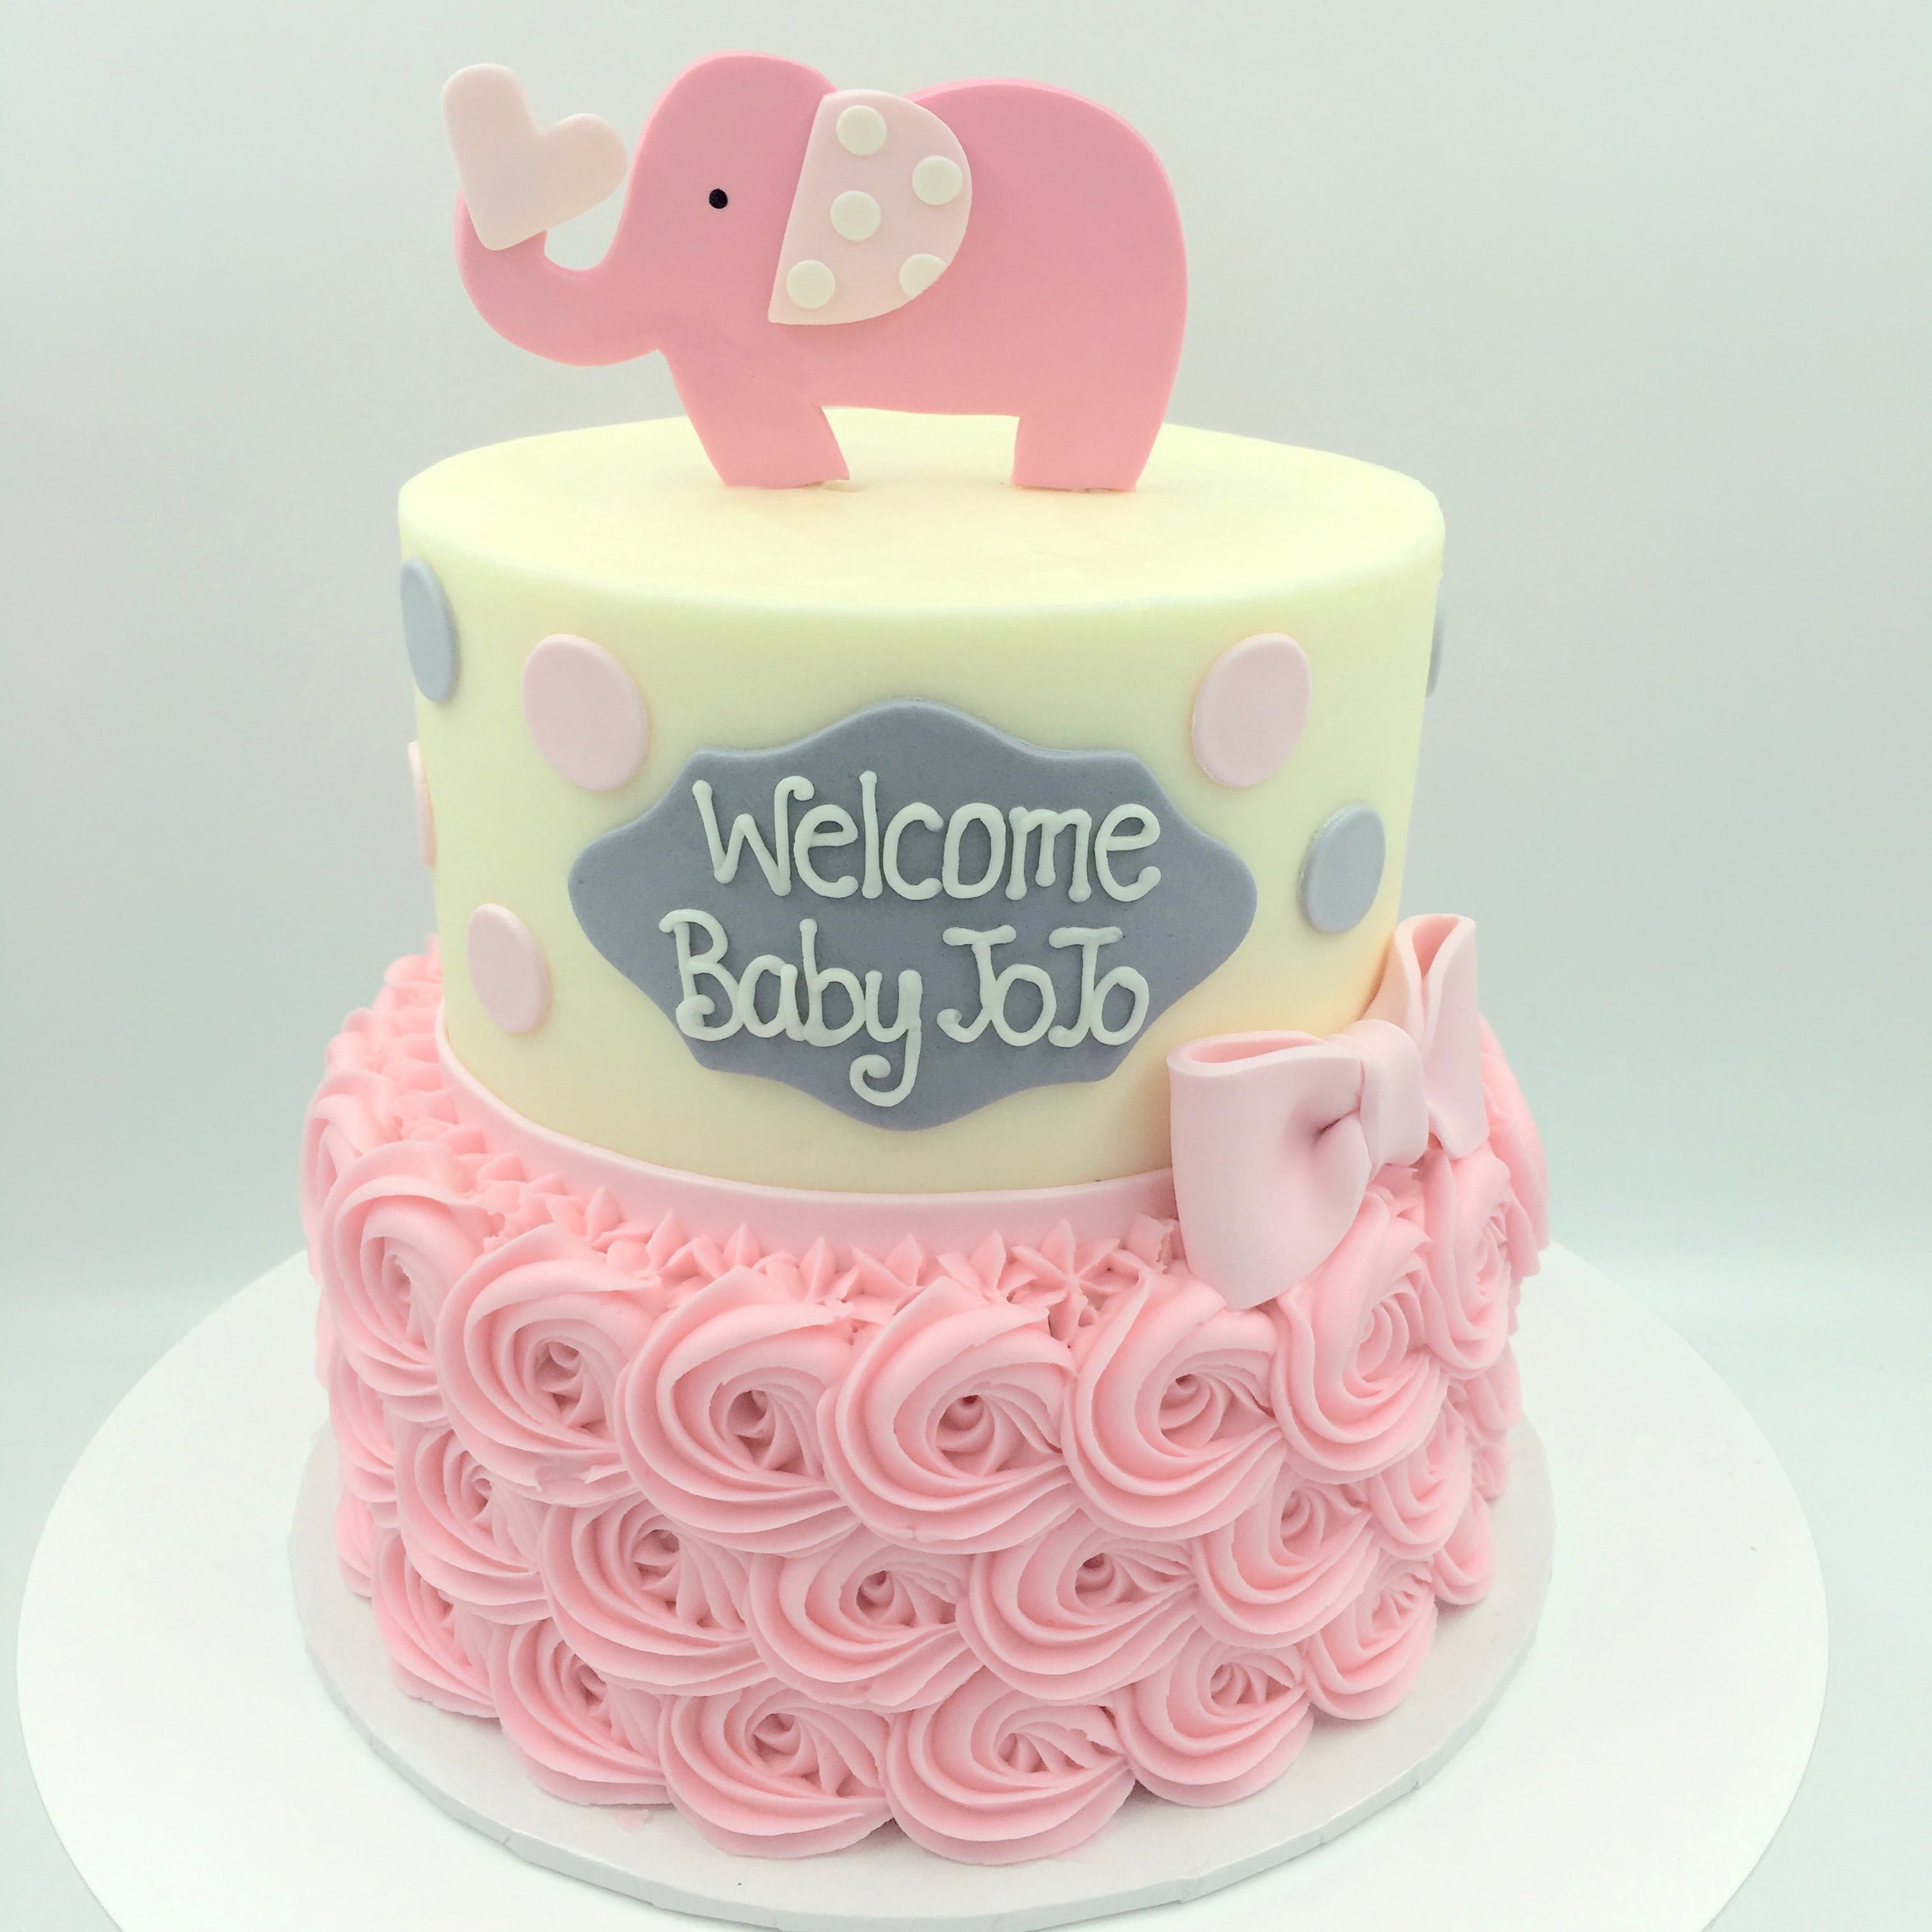 Baby Shower Cakes For Girls.Baby Showers 3 Sweet Girls Cakery